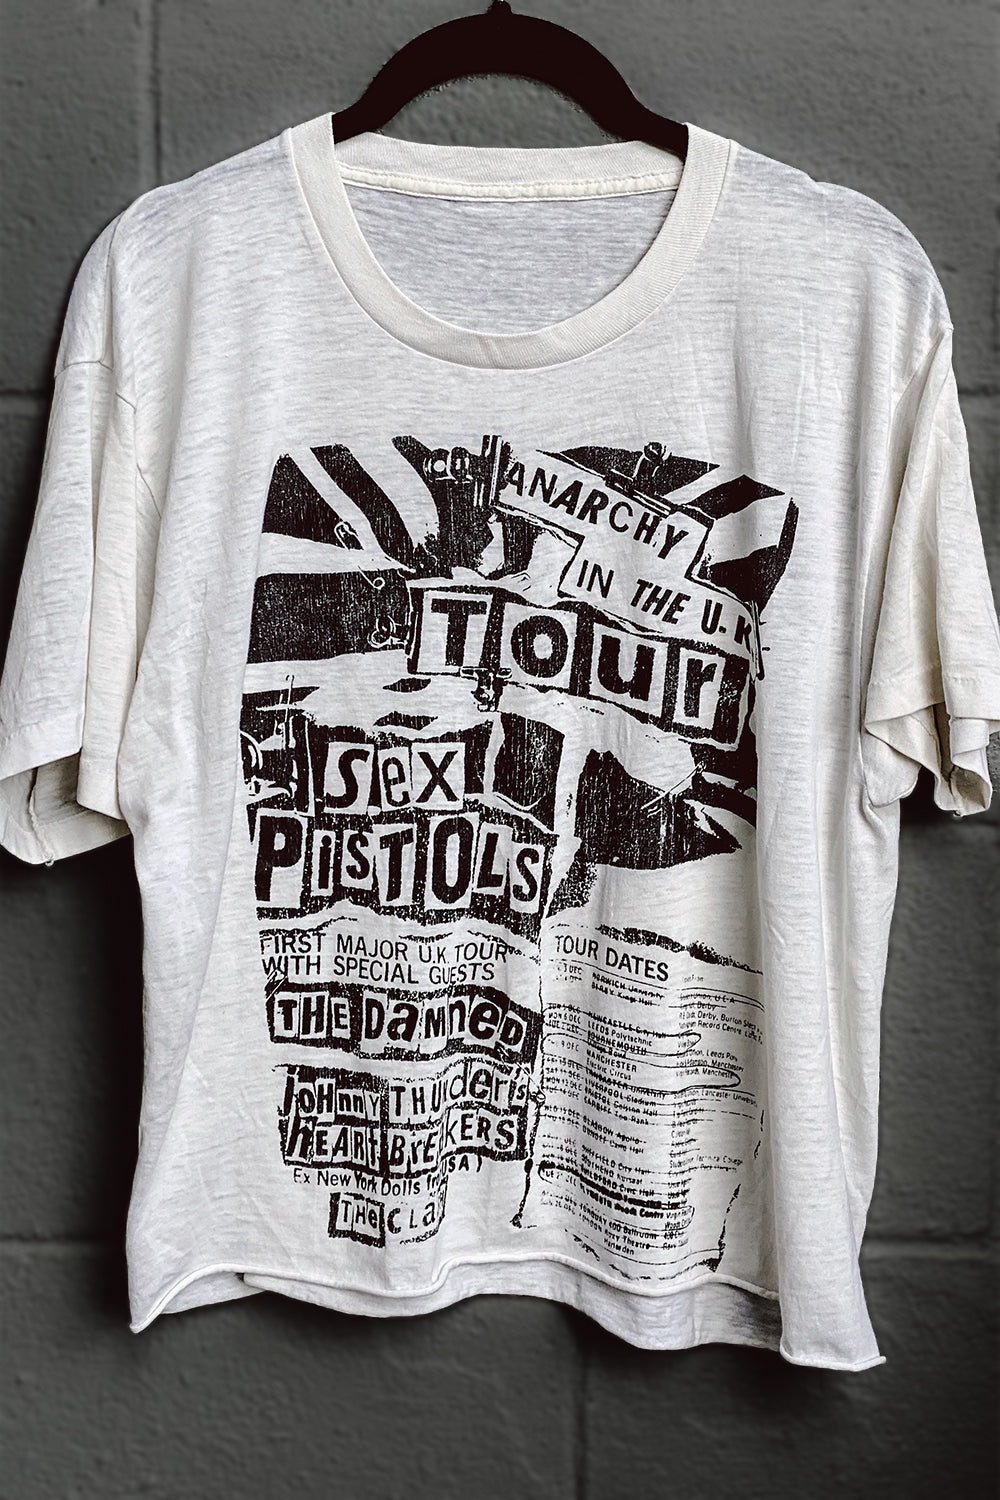 Vintage Sex Pistols Anarchy In The UK Tour Tee